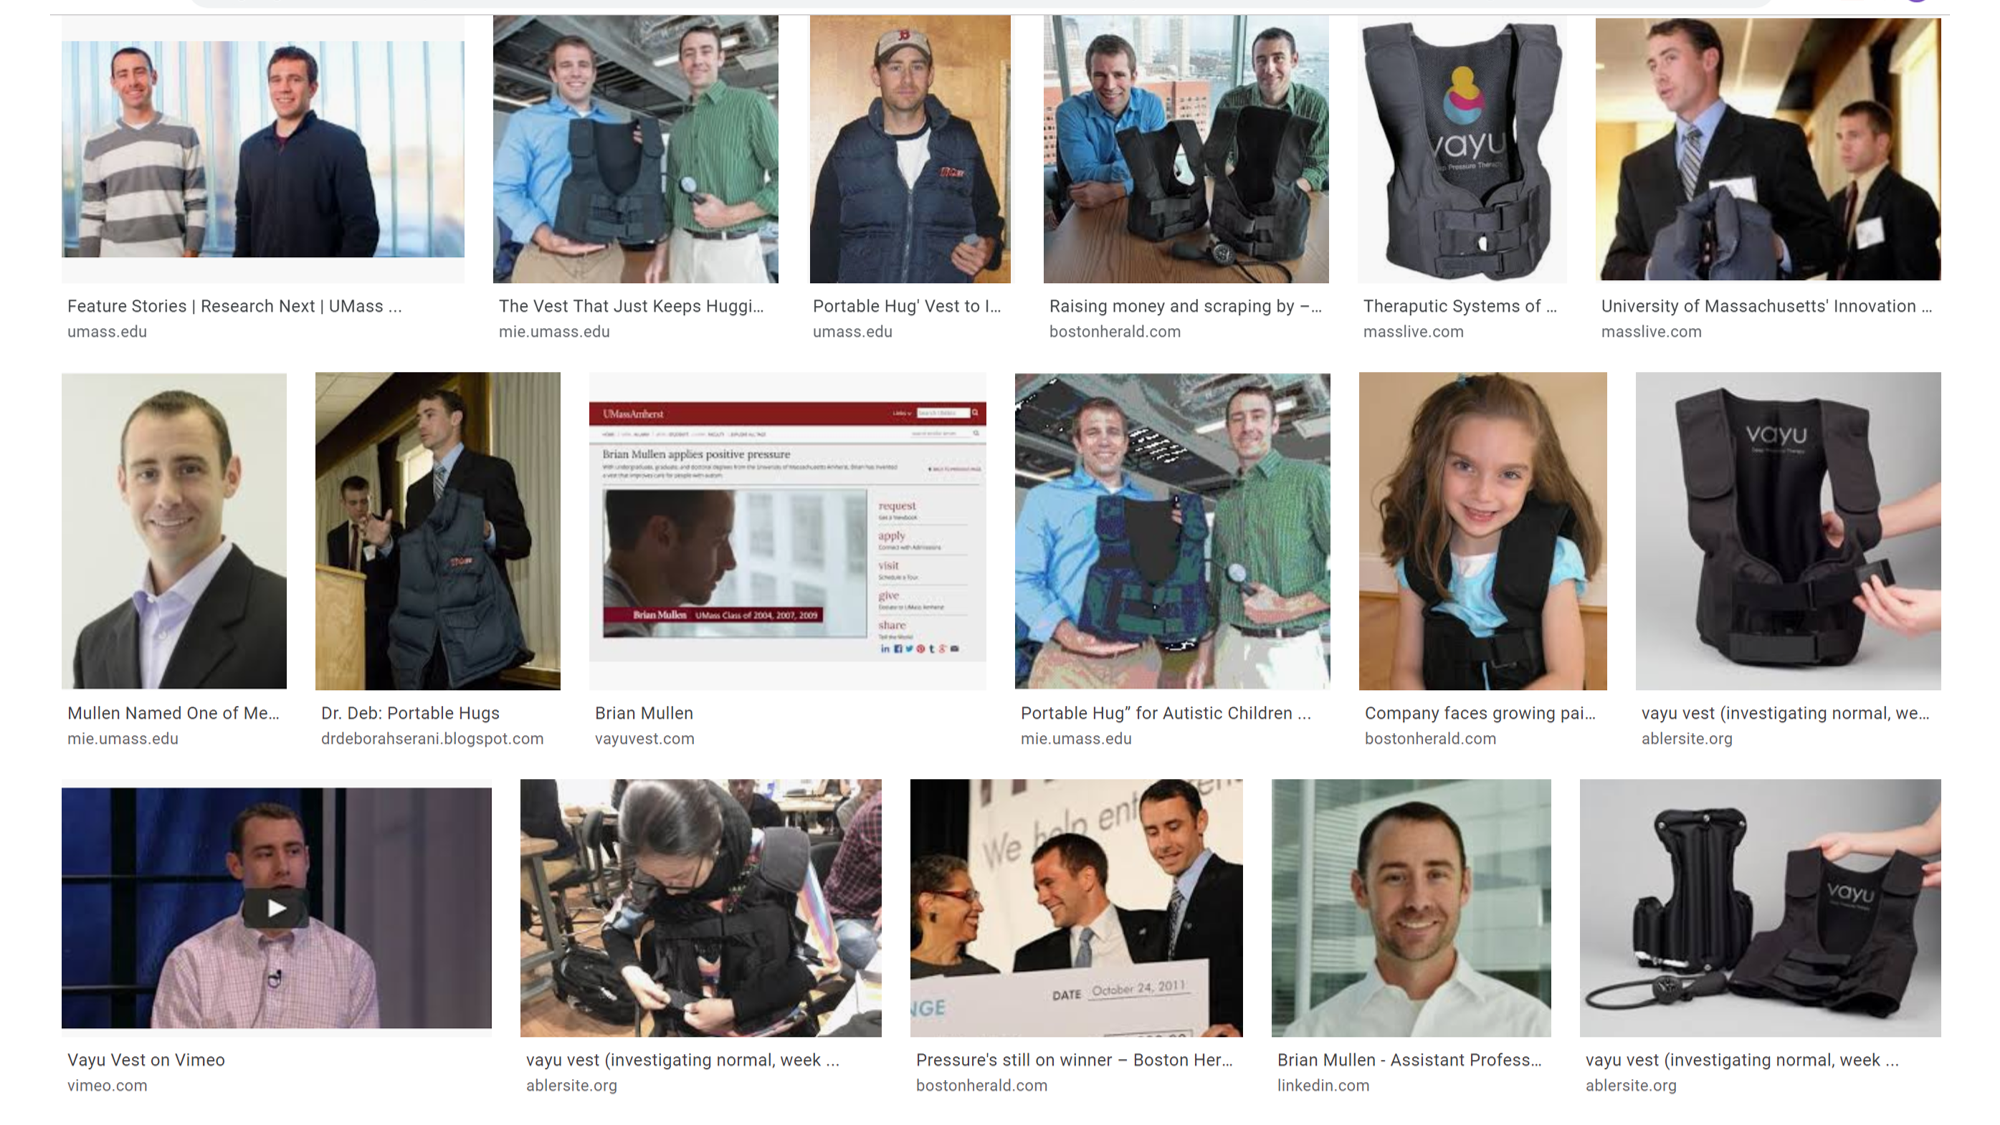 The journey in photos: - The image is a screen capture of a google image search. It capturs the evolution from first prototype (top row third from the left), UMass business plan winning (top row right), to winning MassChallenge (bottom row middle) and selling at American Occupational Therapy Conference (bottom row second from left).